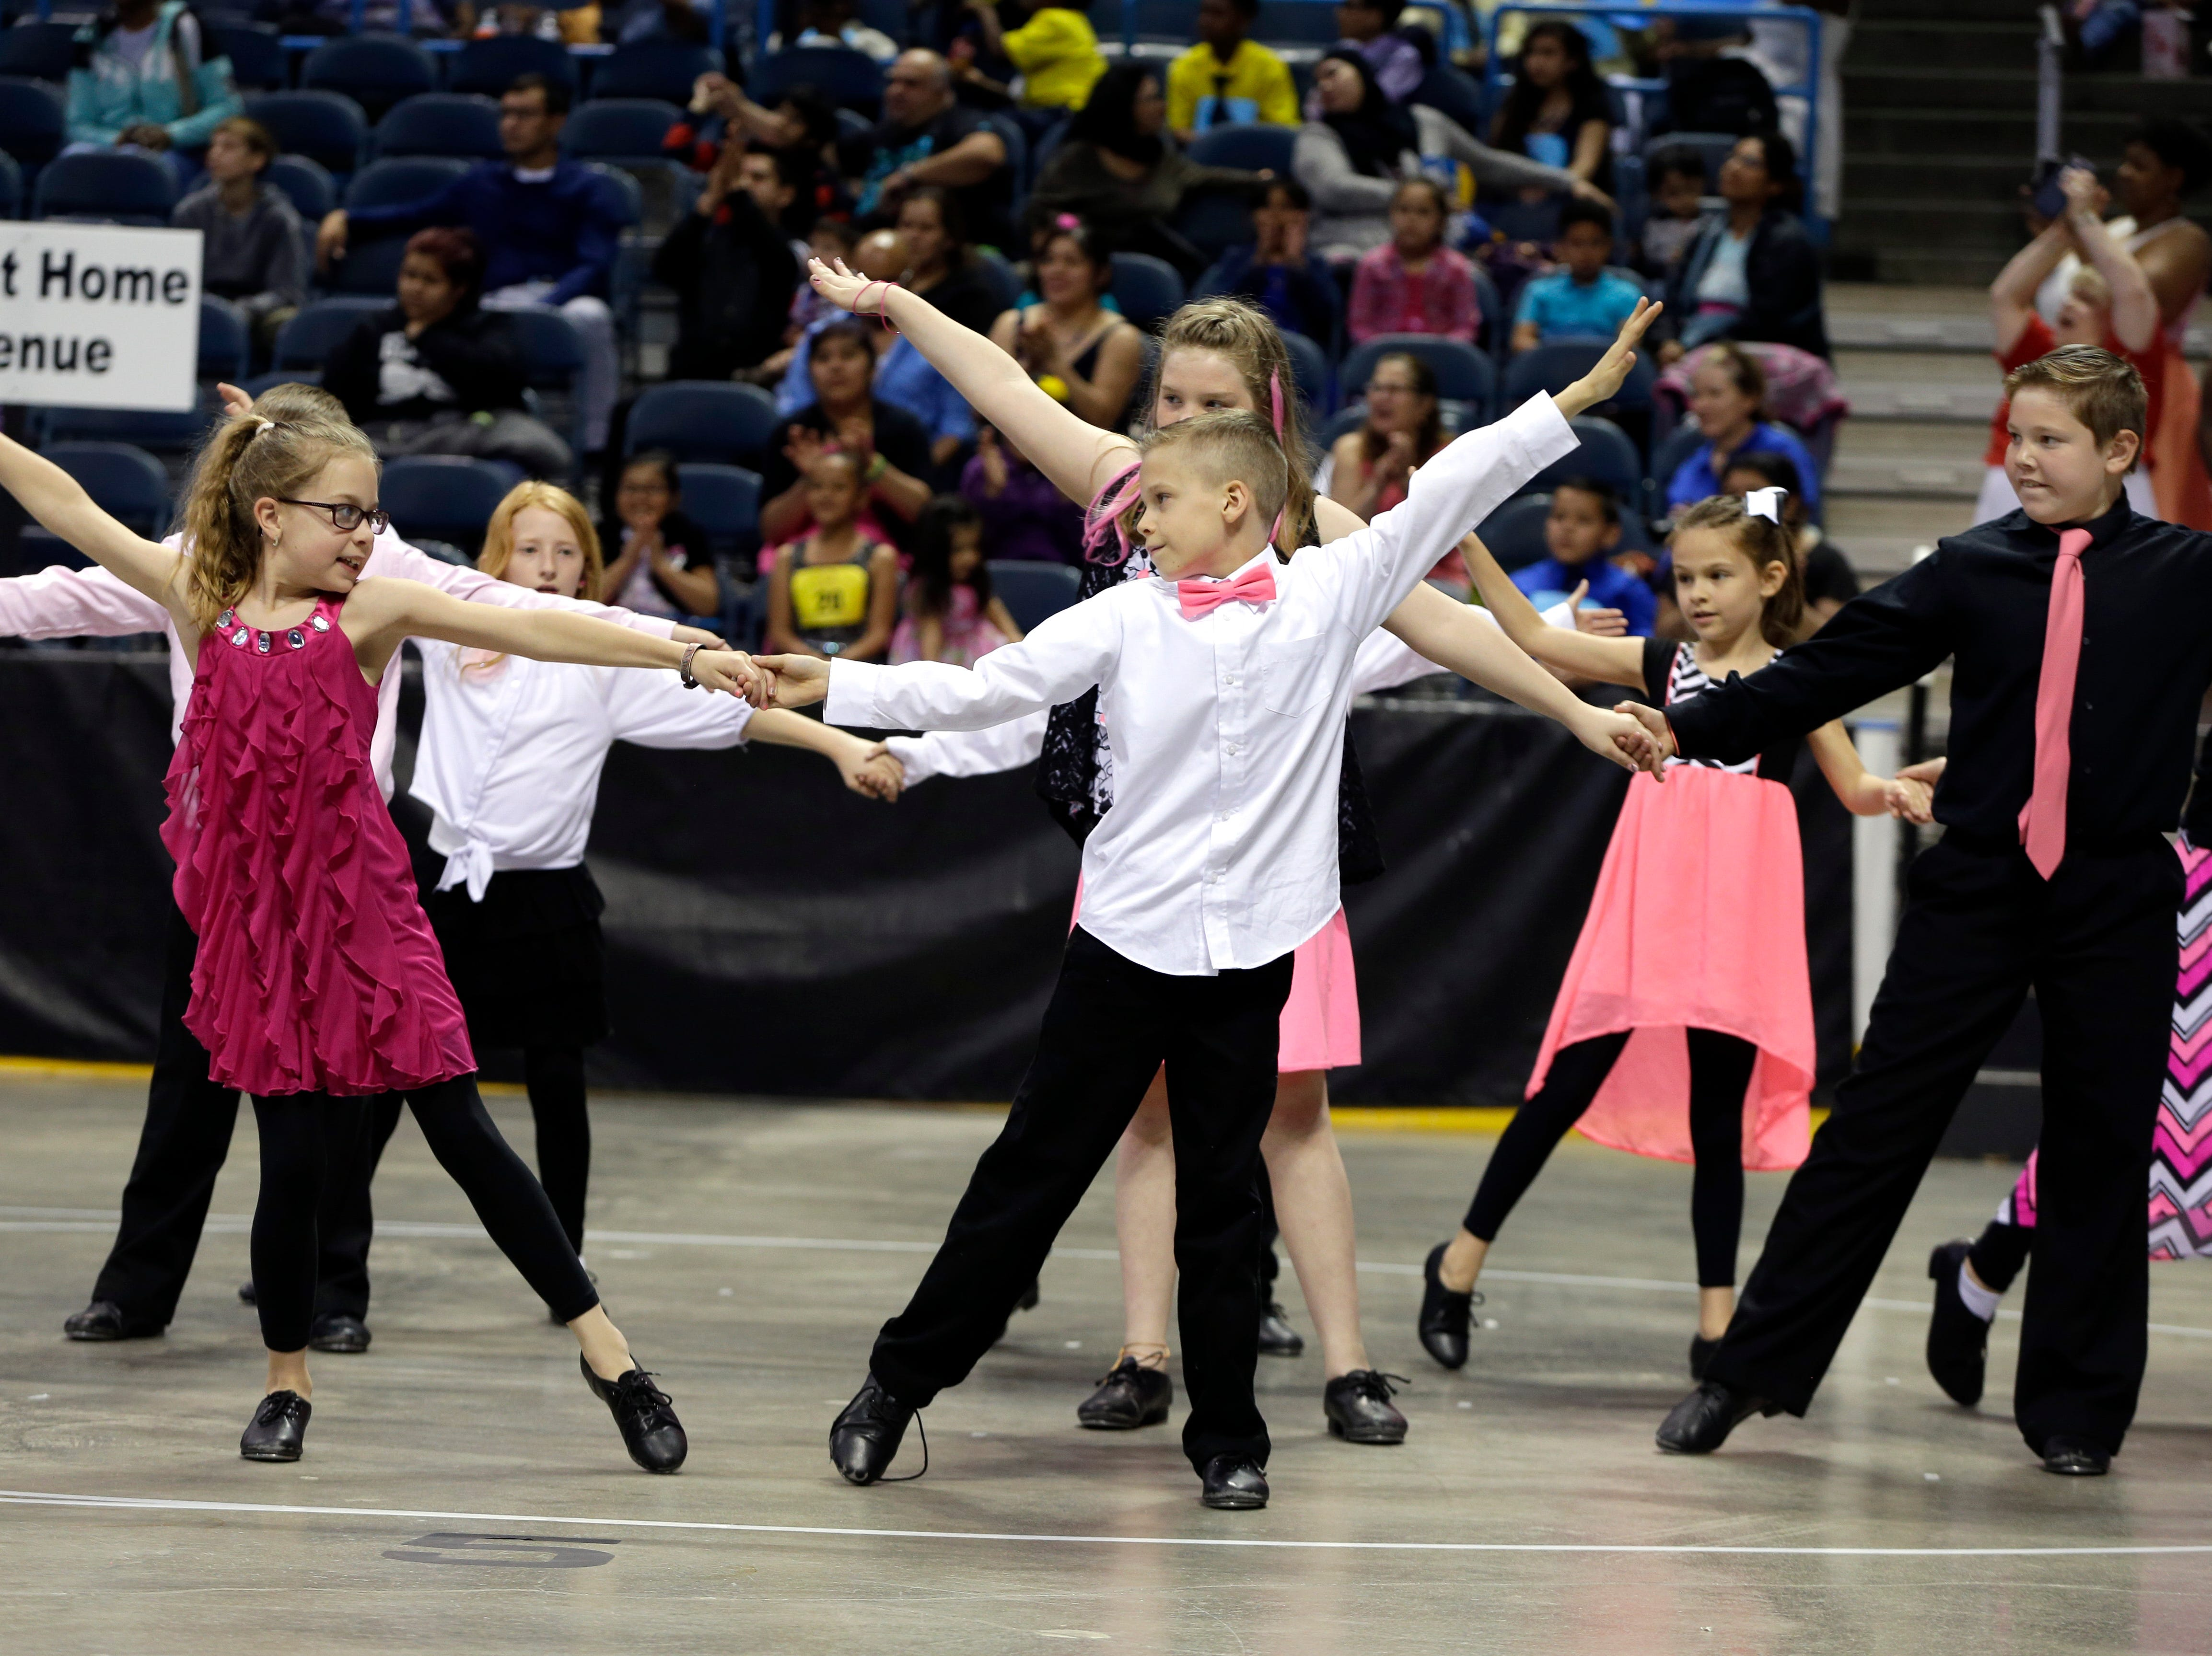 2016: Joelle Smith, 10, left and Lincoln Vegin, 10 middle, perform with other Elm Dale school students in the annual Mad Hot Ballroom and Tap competition at the BMO Harris Bradley Center.